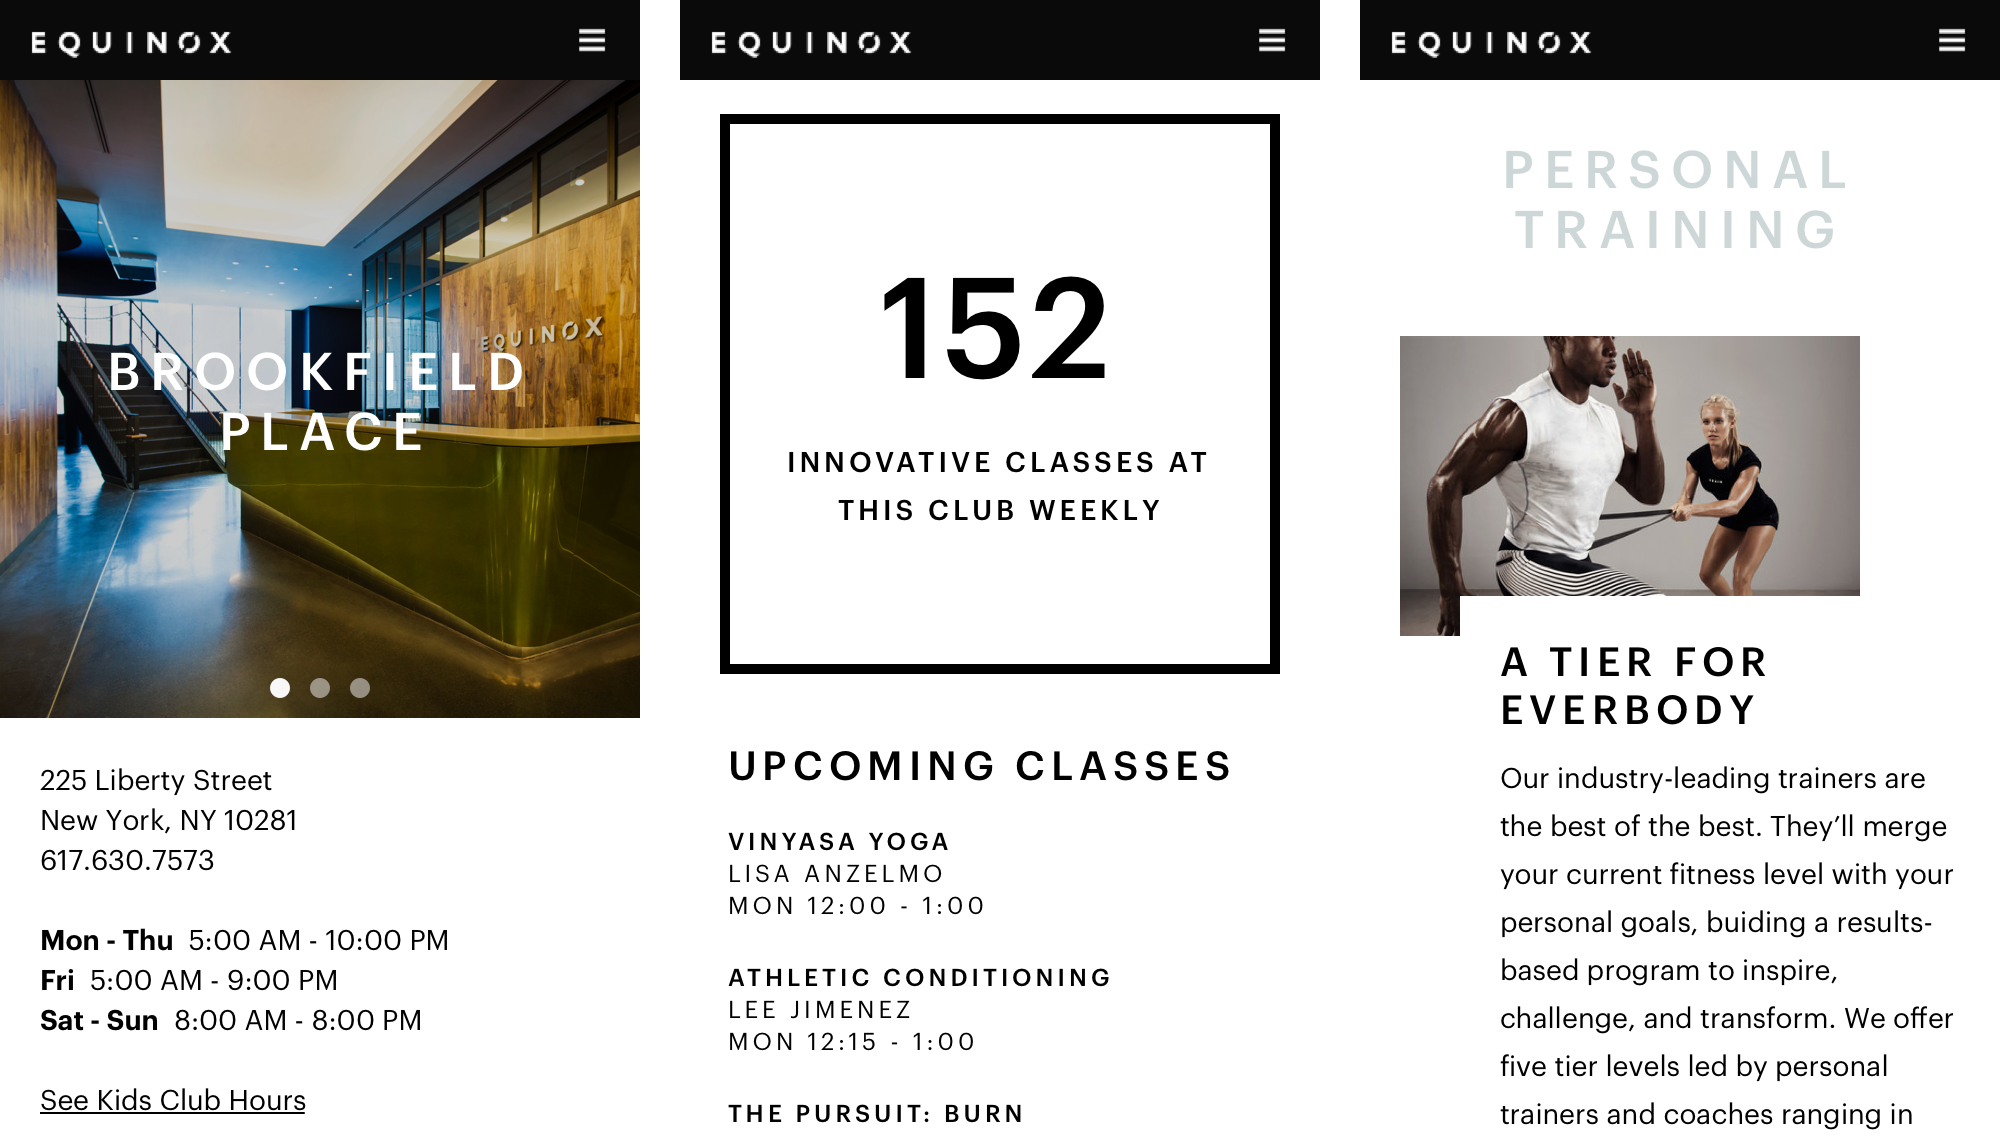 eqx-fitness-club-m-4.png